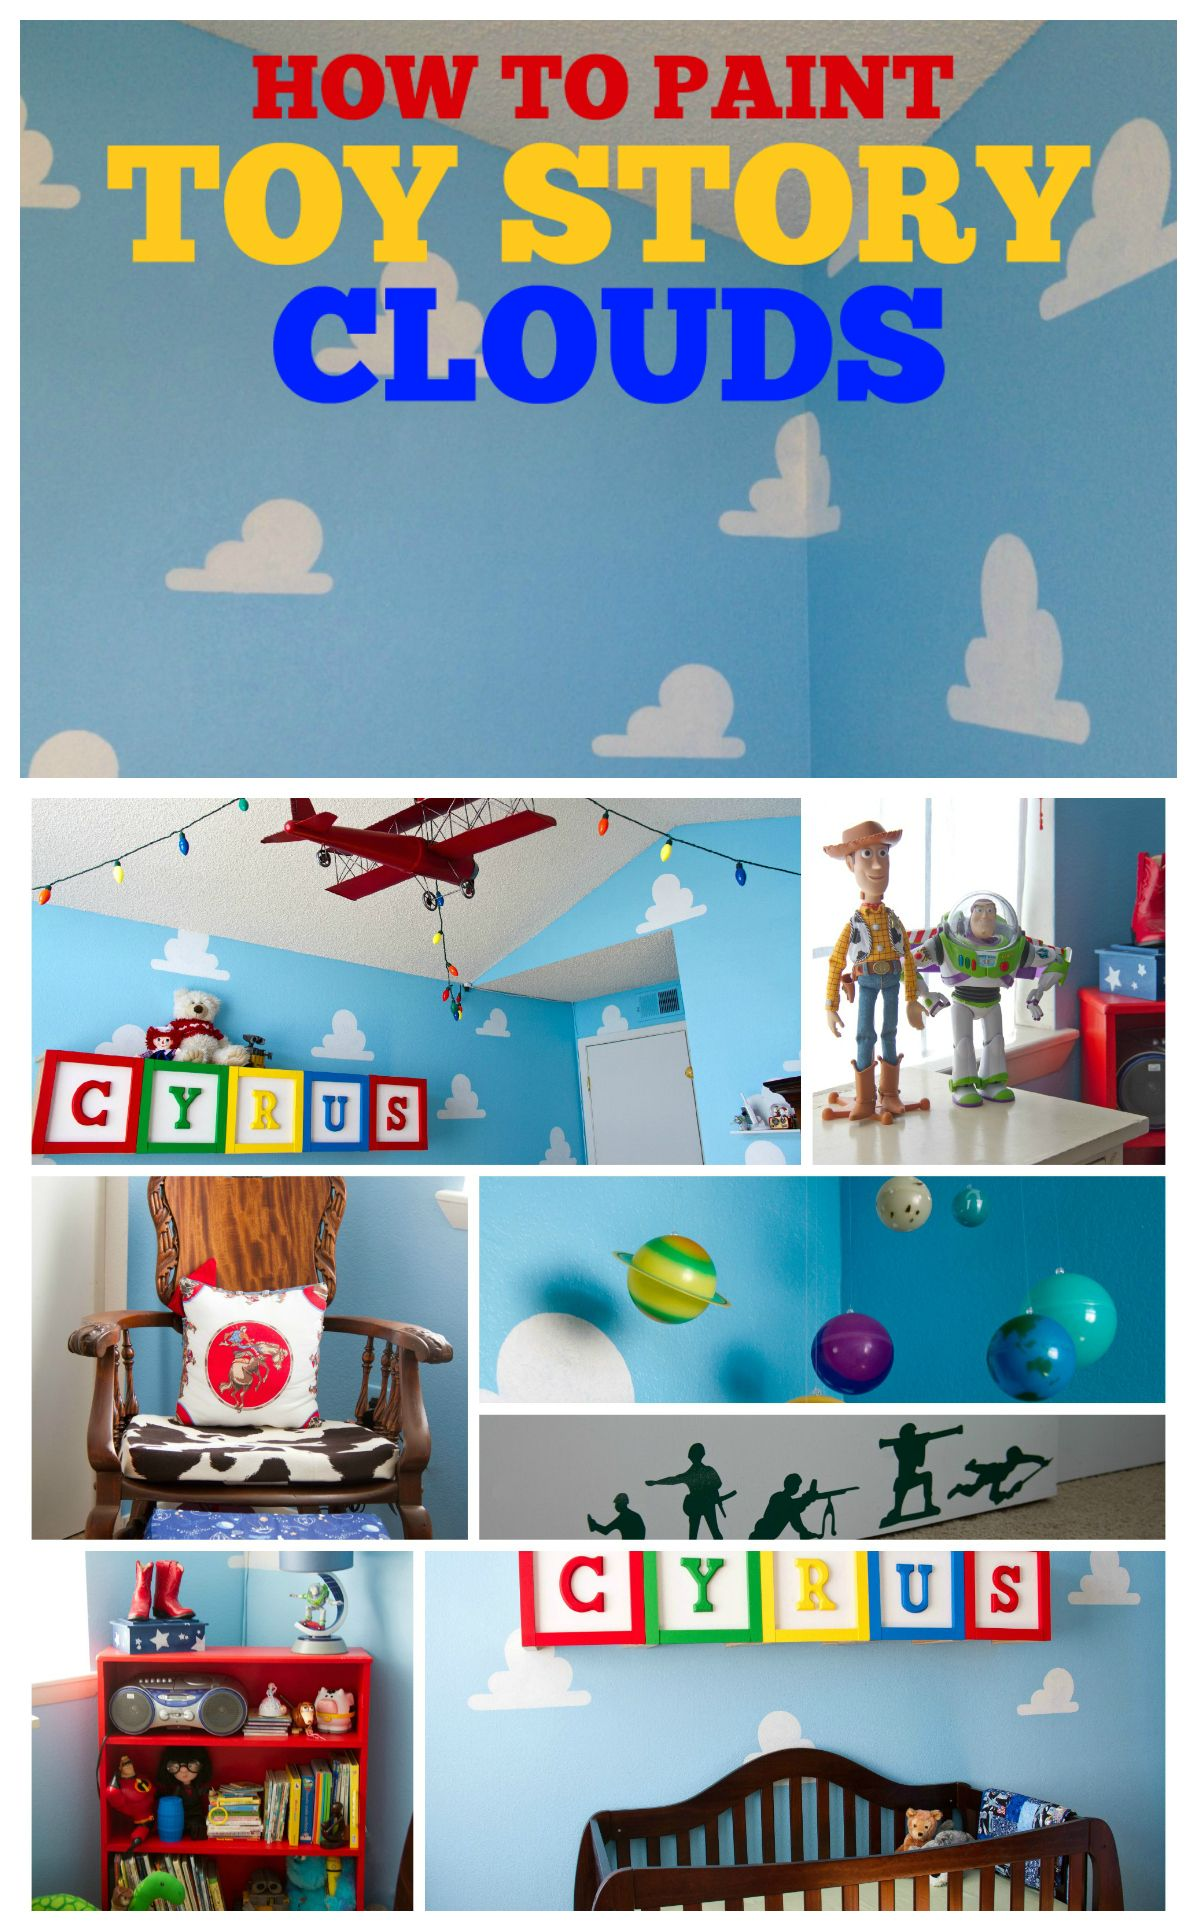 How To Paint Toy Story Clouds With A Cloud Stencil By Living Lullaby Designs